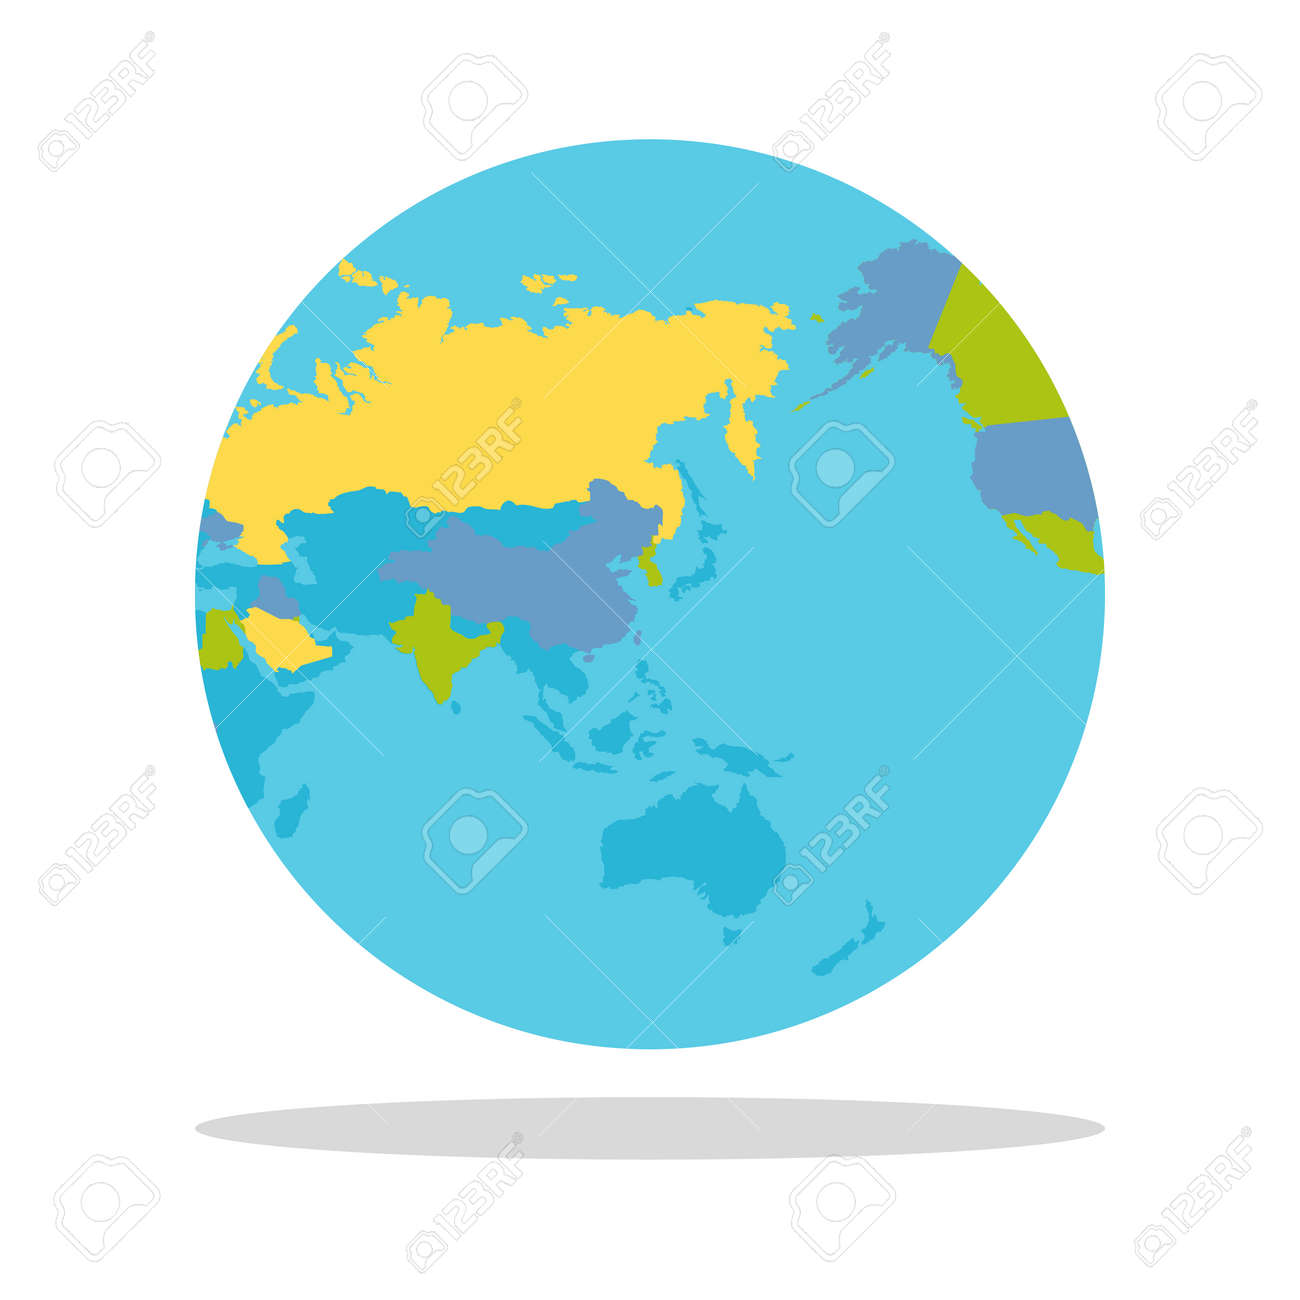 Planet Earth Vector Illustration World Globe With Political - Globe map with countries